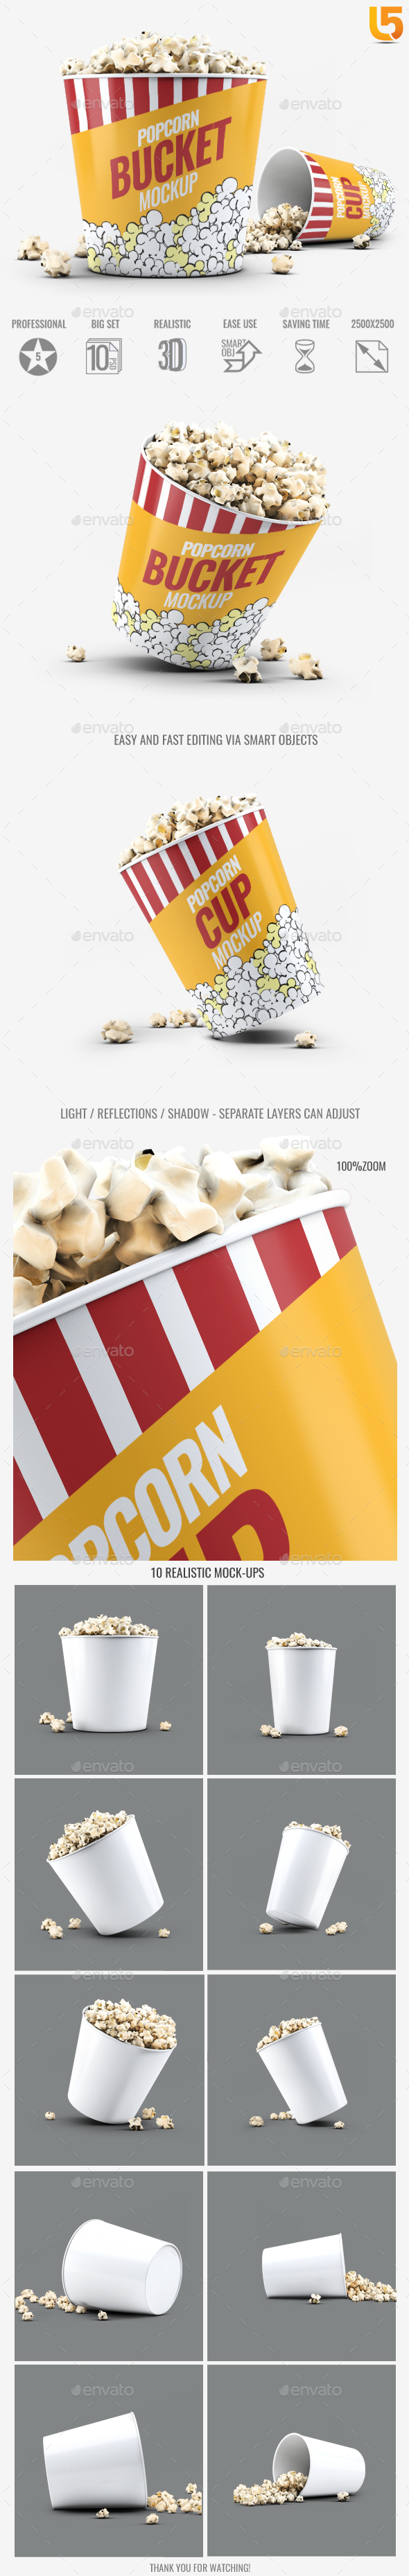 Popcorn Bucket & Cup Mock-Up - Food and Drink Packaging